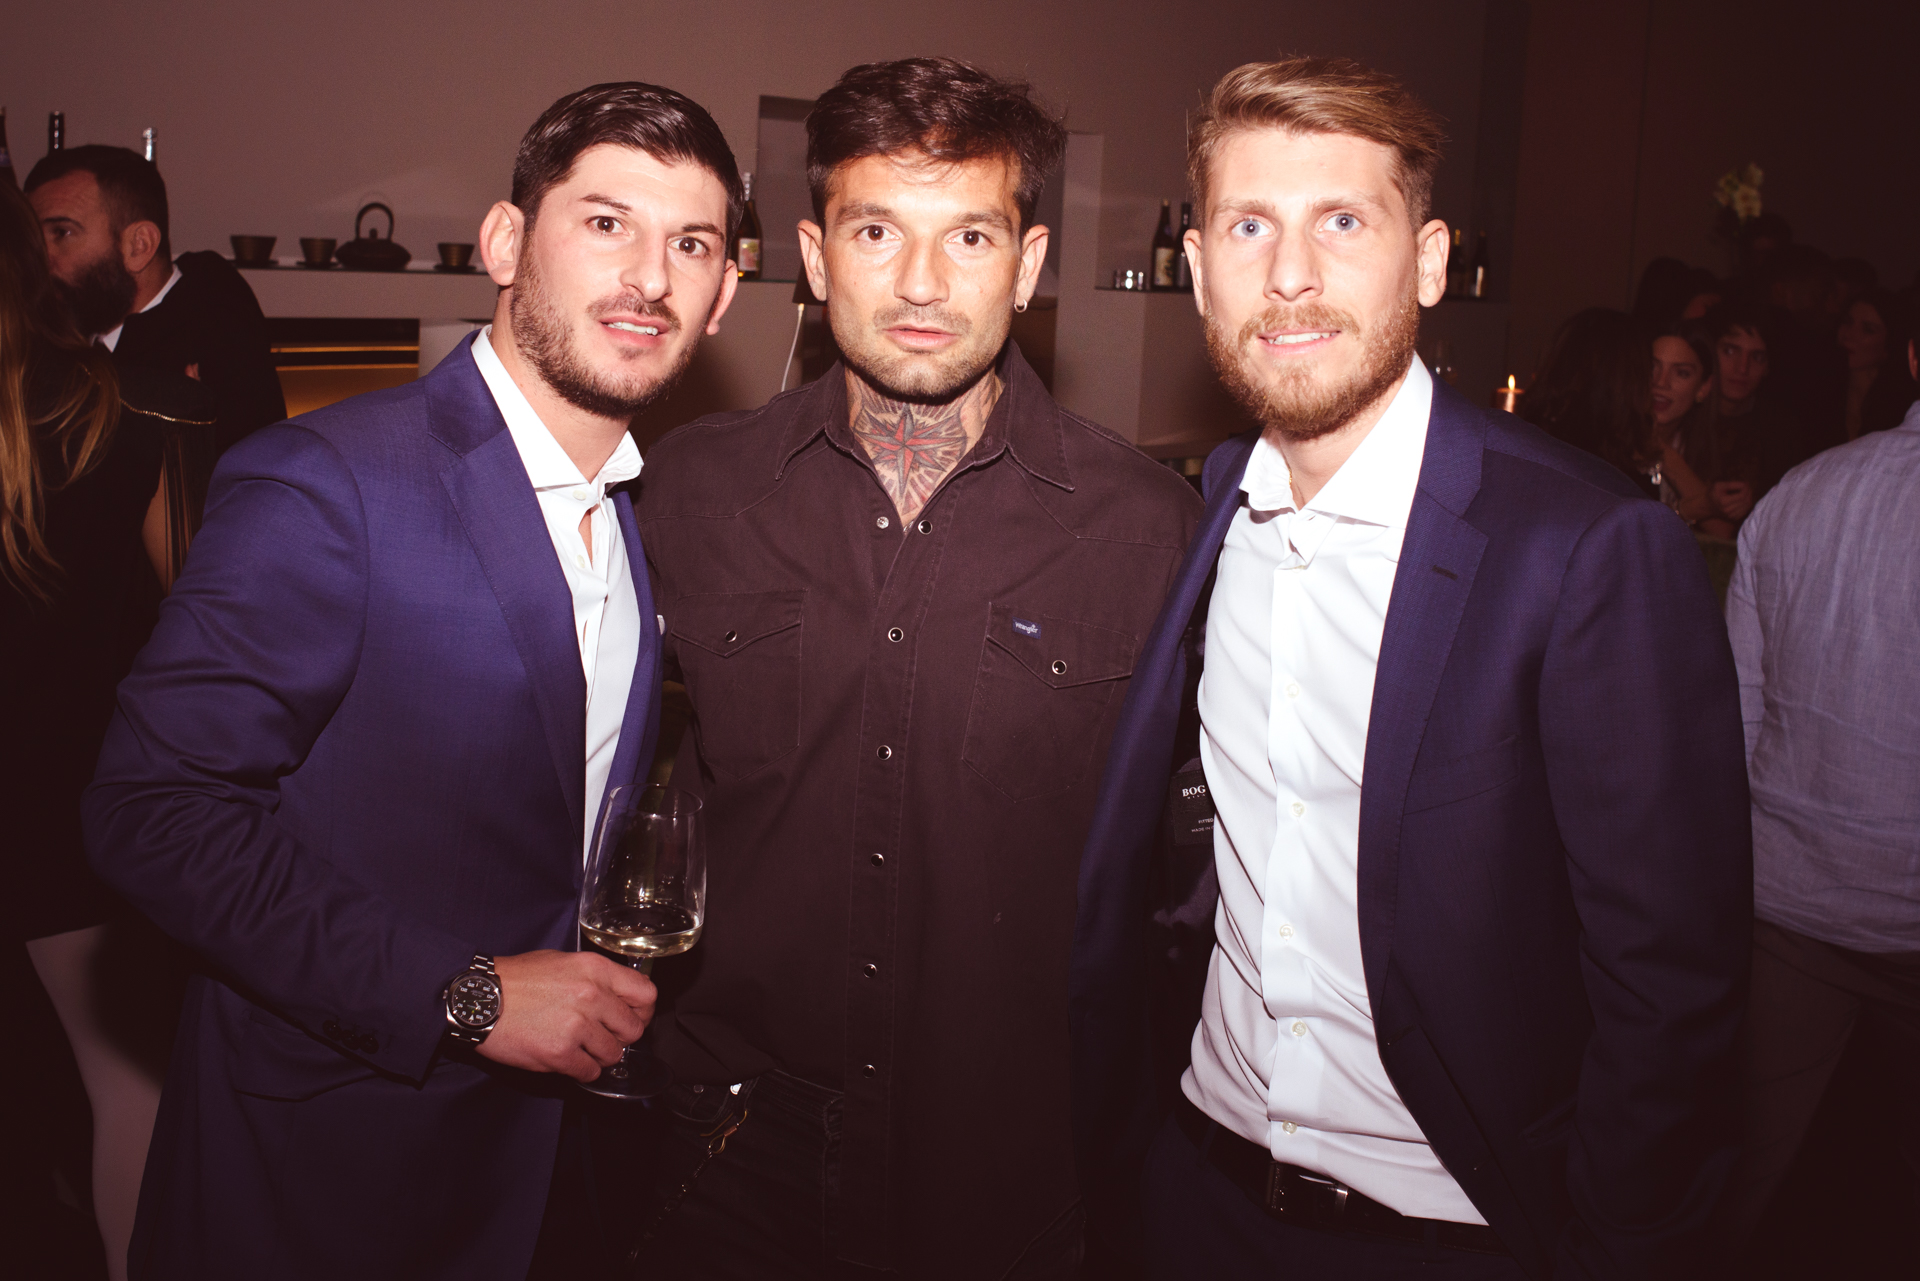 A Roma inaugura un nuovo supperclub: l'Off Club